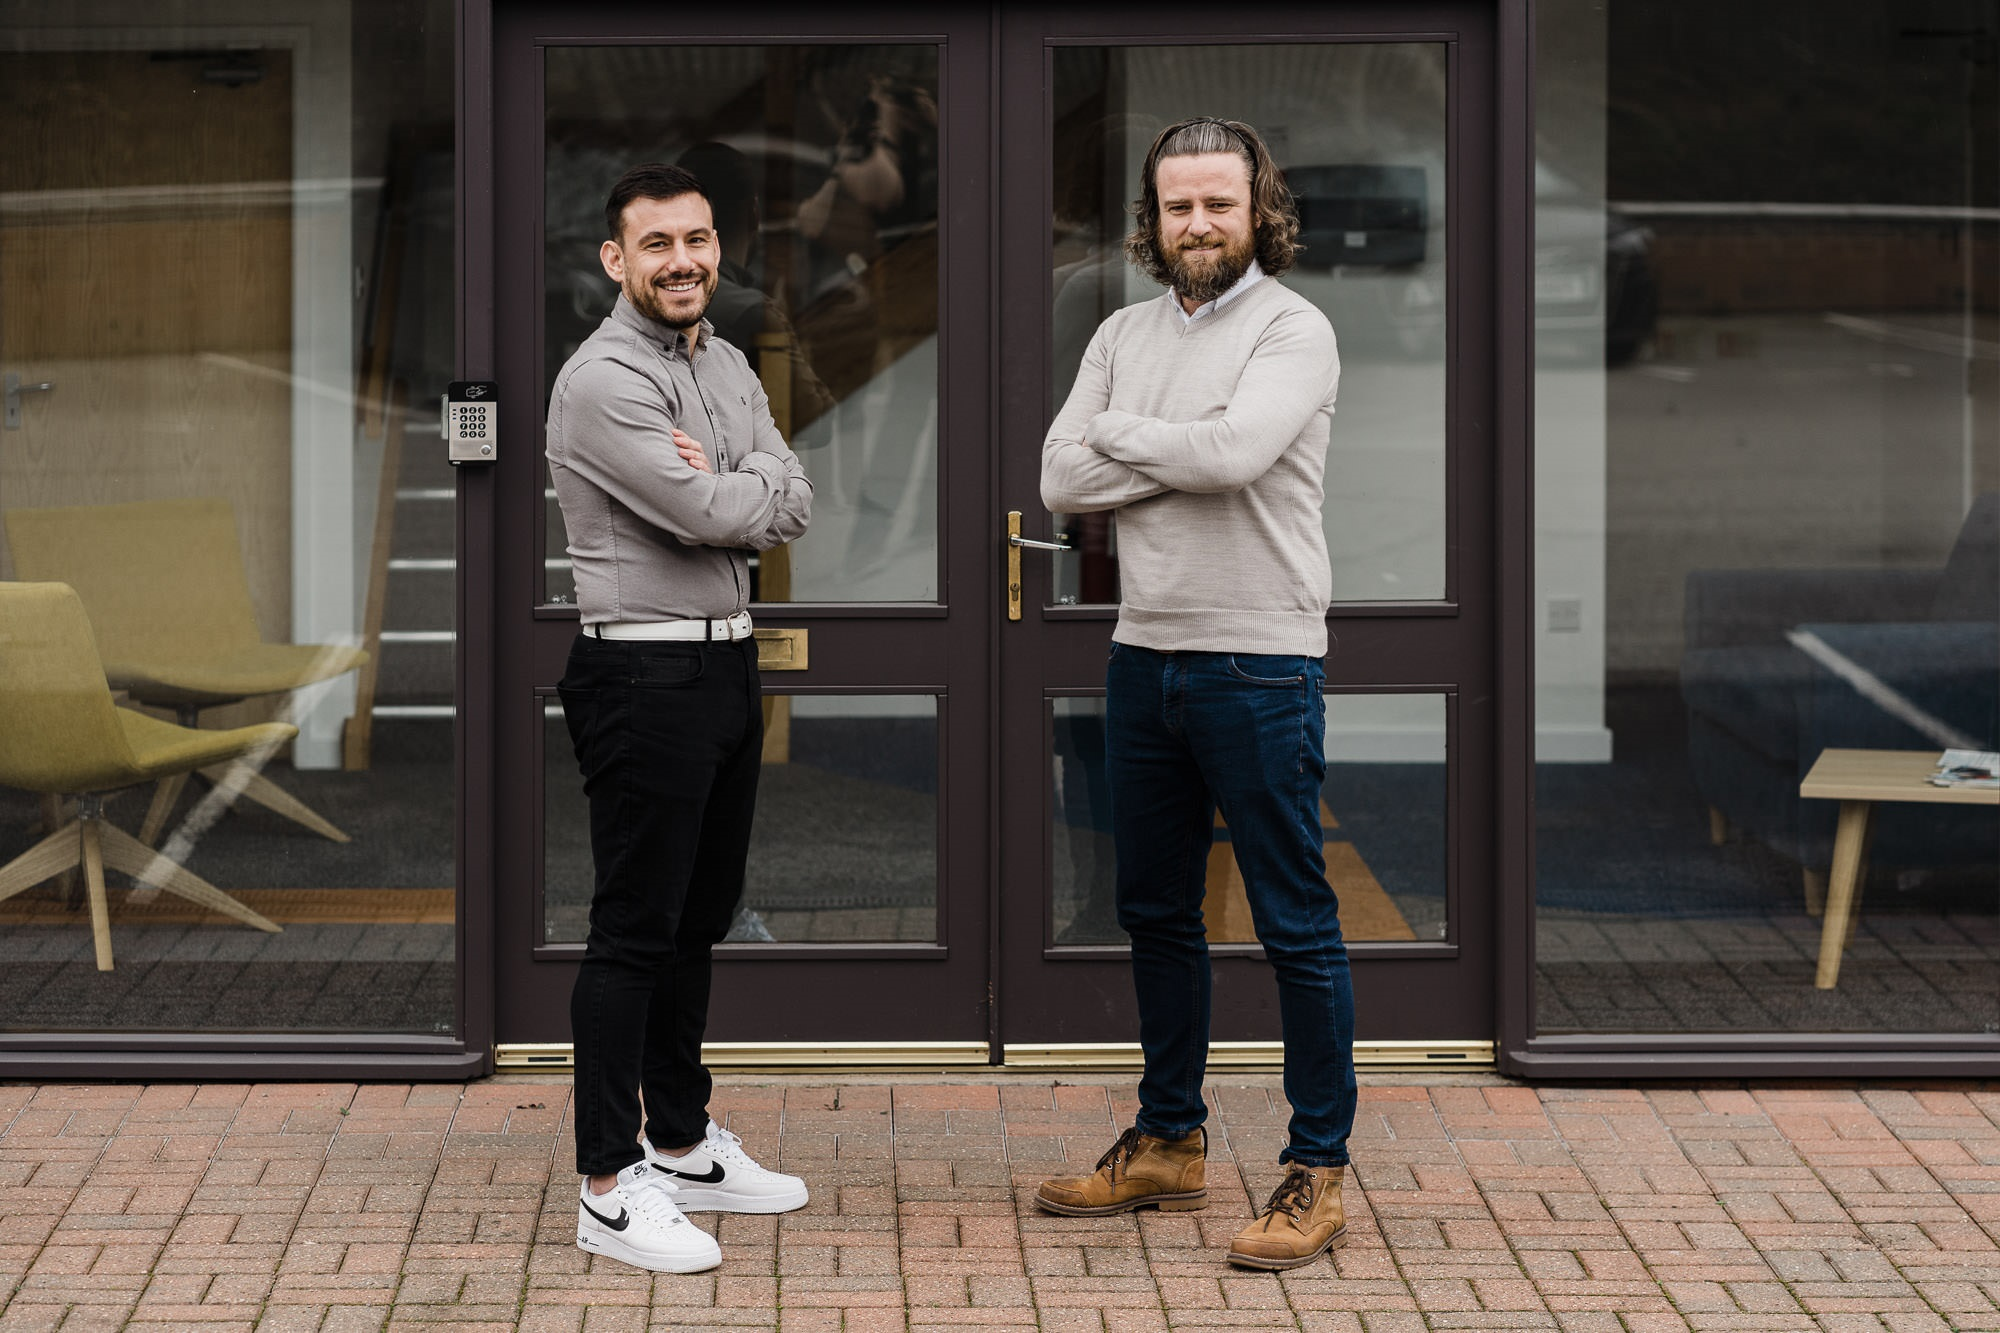 New faces, branding and website for IT firm with ambitious growth plans